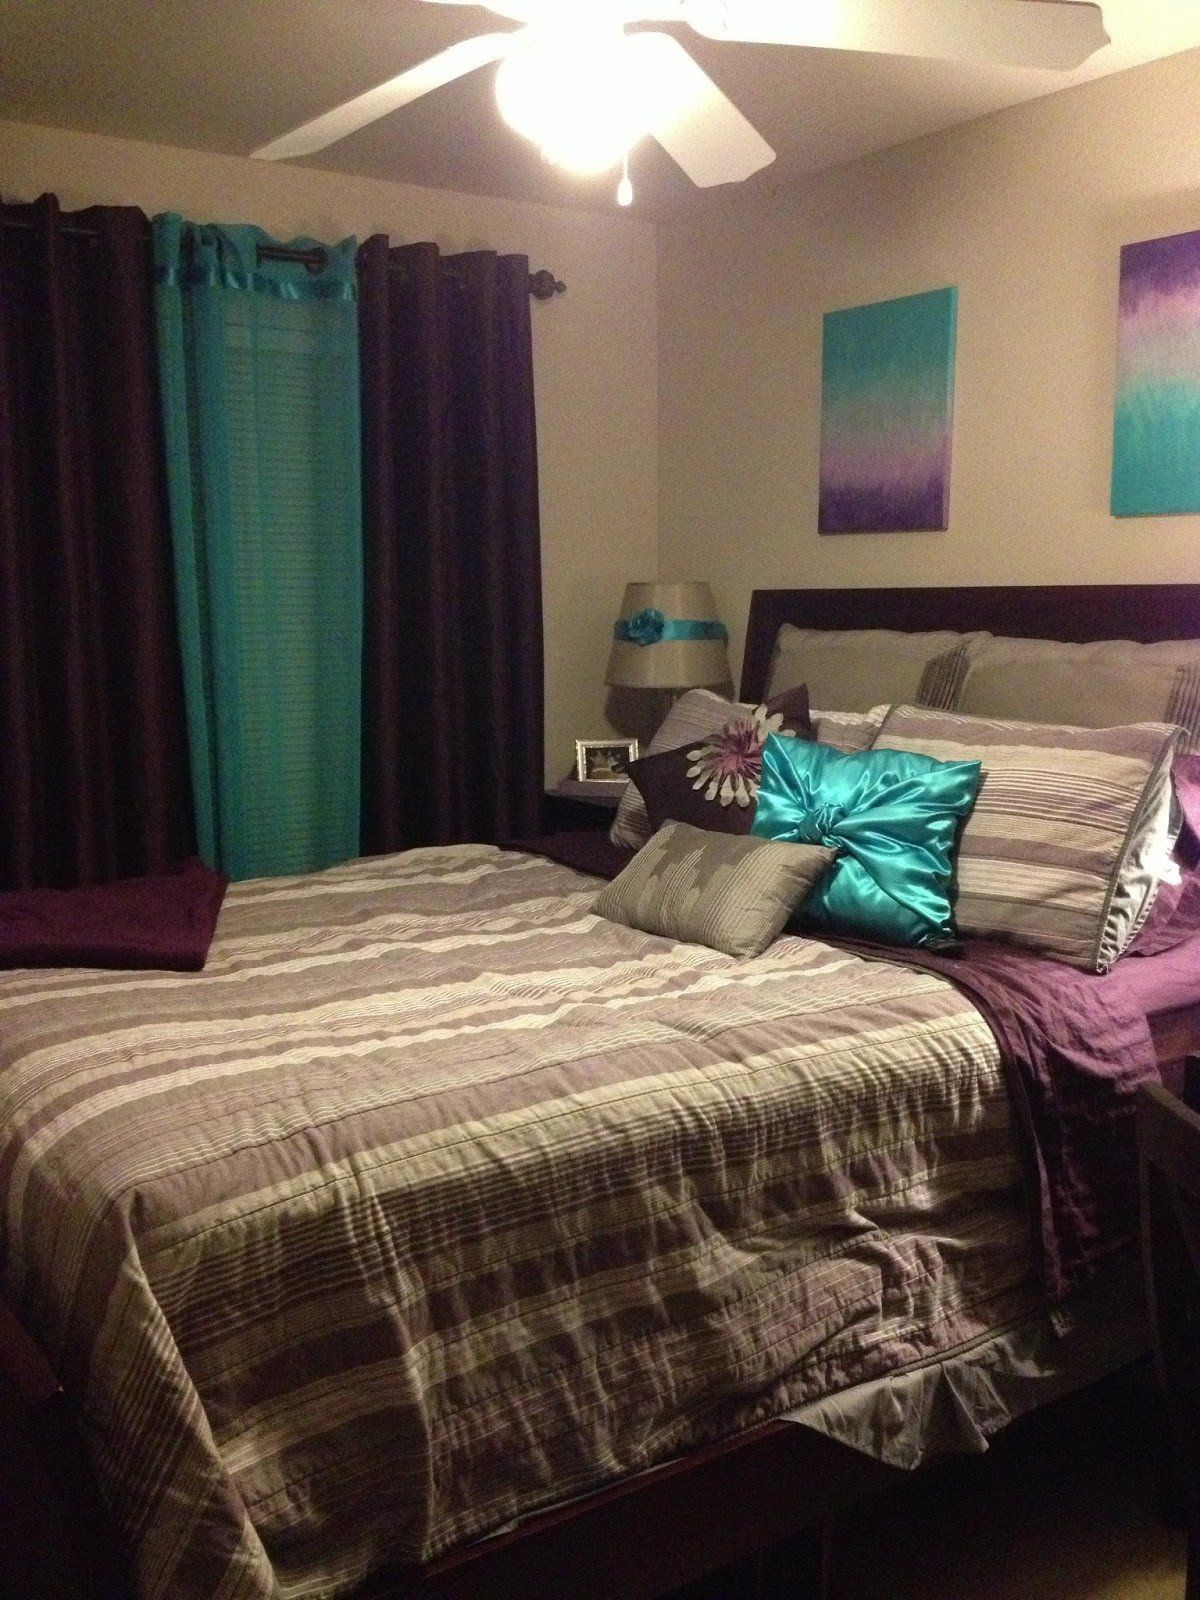 Purple And Green Bedrooms Ideas Teal And Purple Bedroom Bedroom At Real Estate In 2020 Teal Bedroom Decor Remodel Bedroom Teal Bedroom Teal purple bedroom ideas